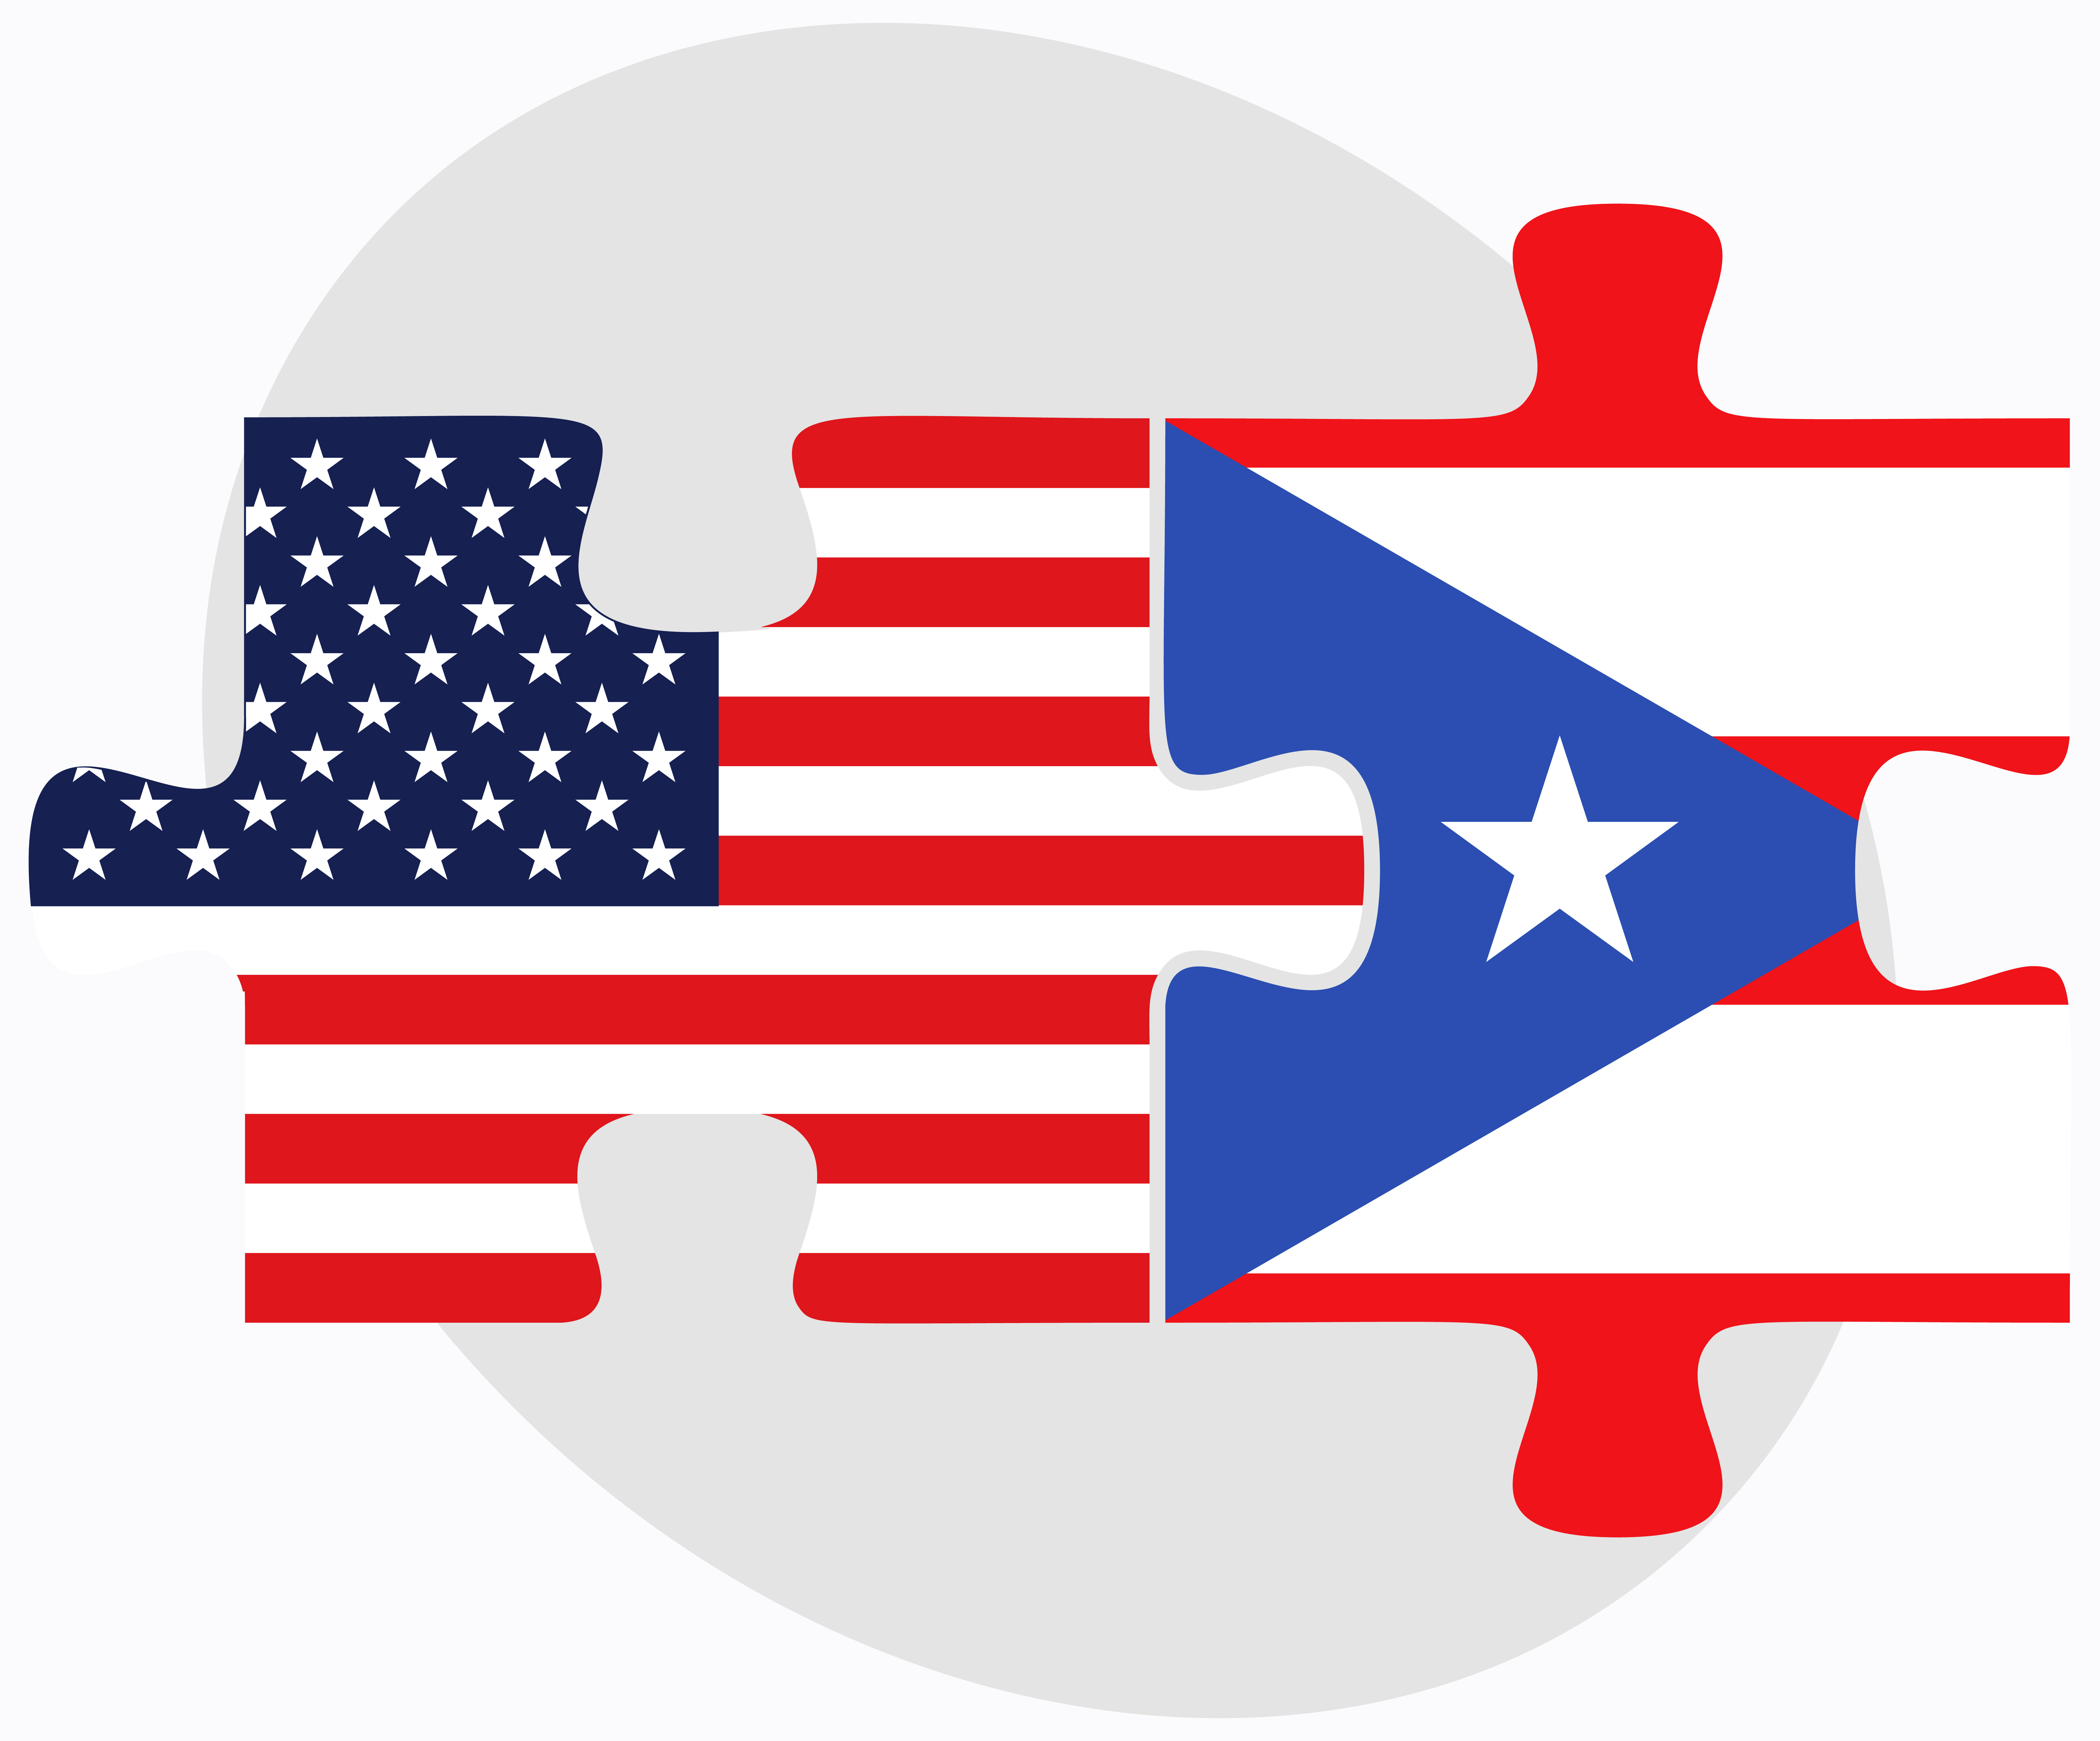 possible statehood for puerto rico essay But even among the rich and among puerto ricans without close links to the rest of the united states, the framing of the question ensured that statehood would prevail among the options for change.